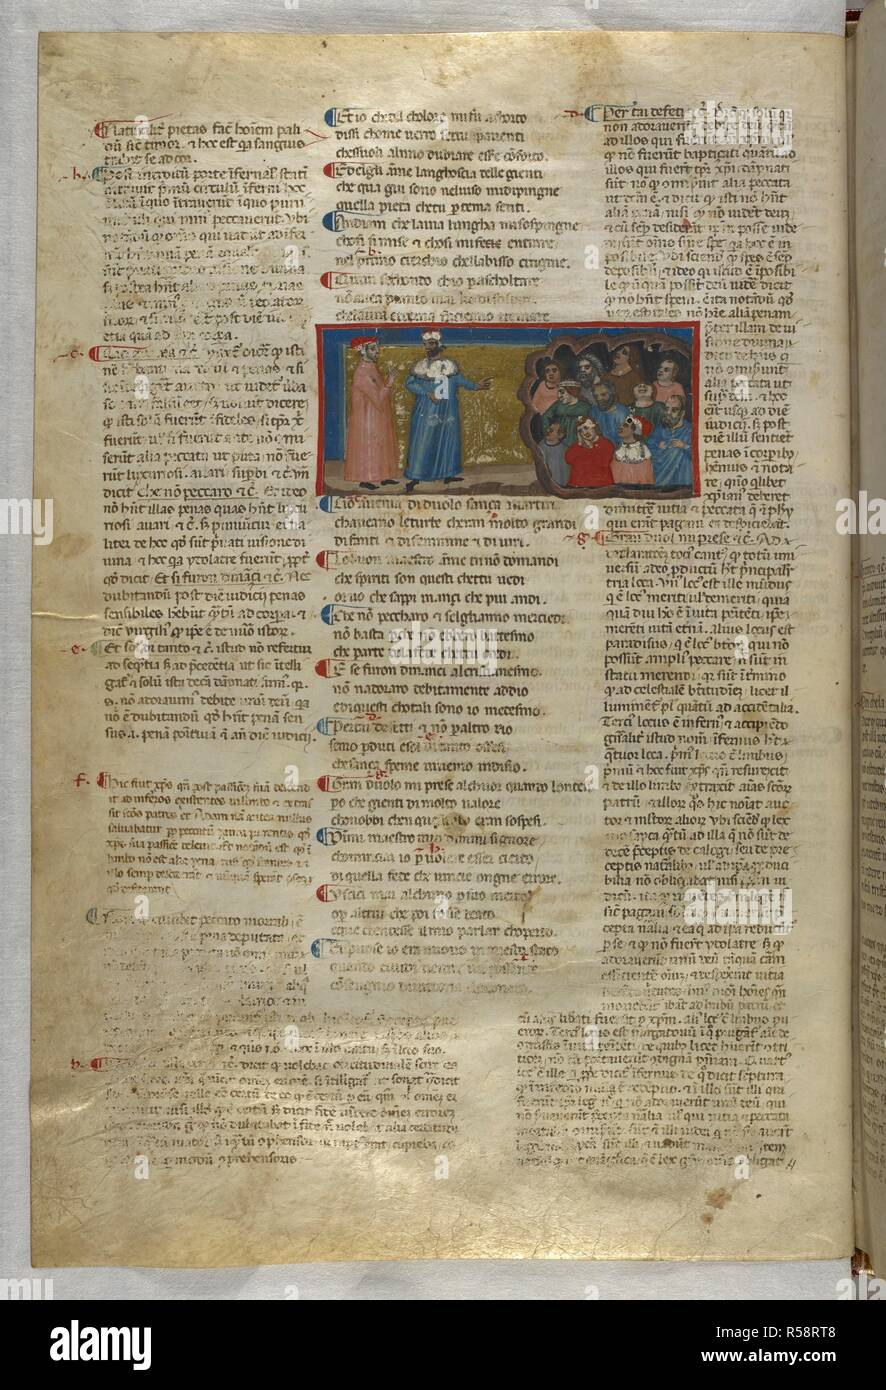 Inferno: Dante and Virgil meet the unbaptised souls. Dante Alighieri, Divina Commedia ( The Divine Comedy ), with a commentary in Latin. 1st half of the 14th century. Source: Egerton 943, f.8v. Language: Italian, Latin. - Stock Image